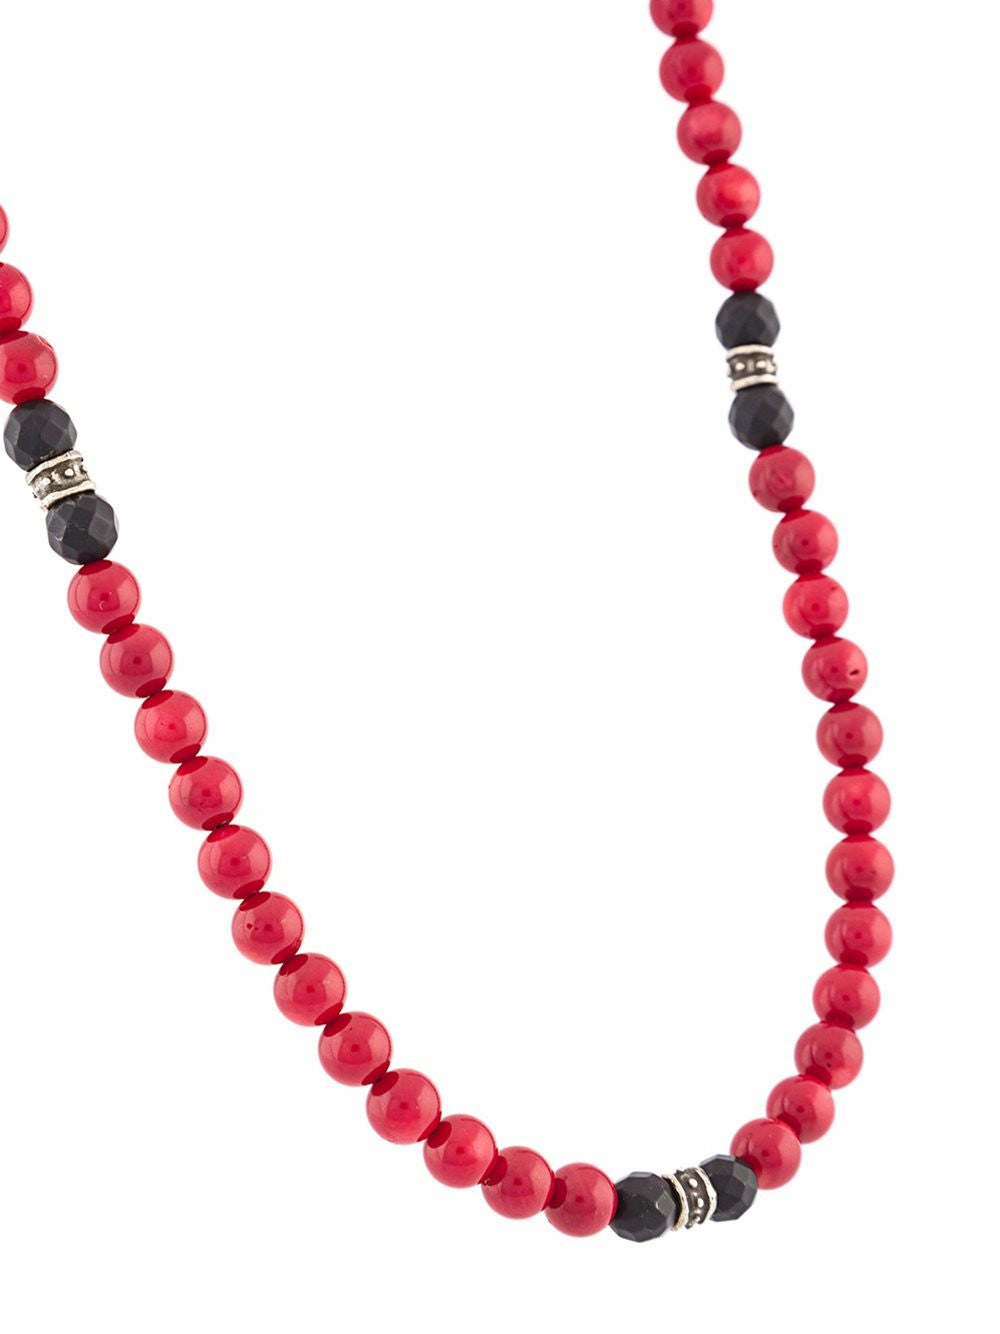 Beaded Red Coral Necklace | N-479-5